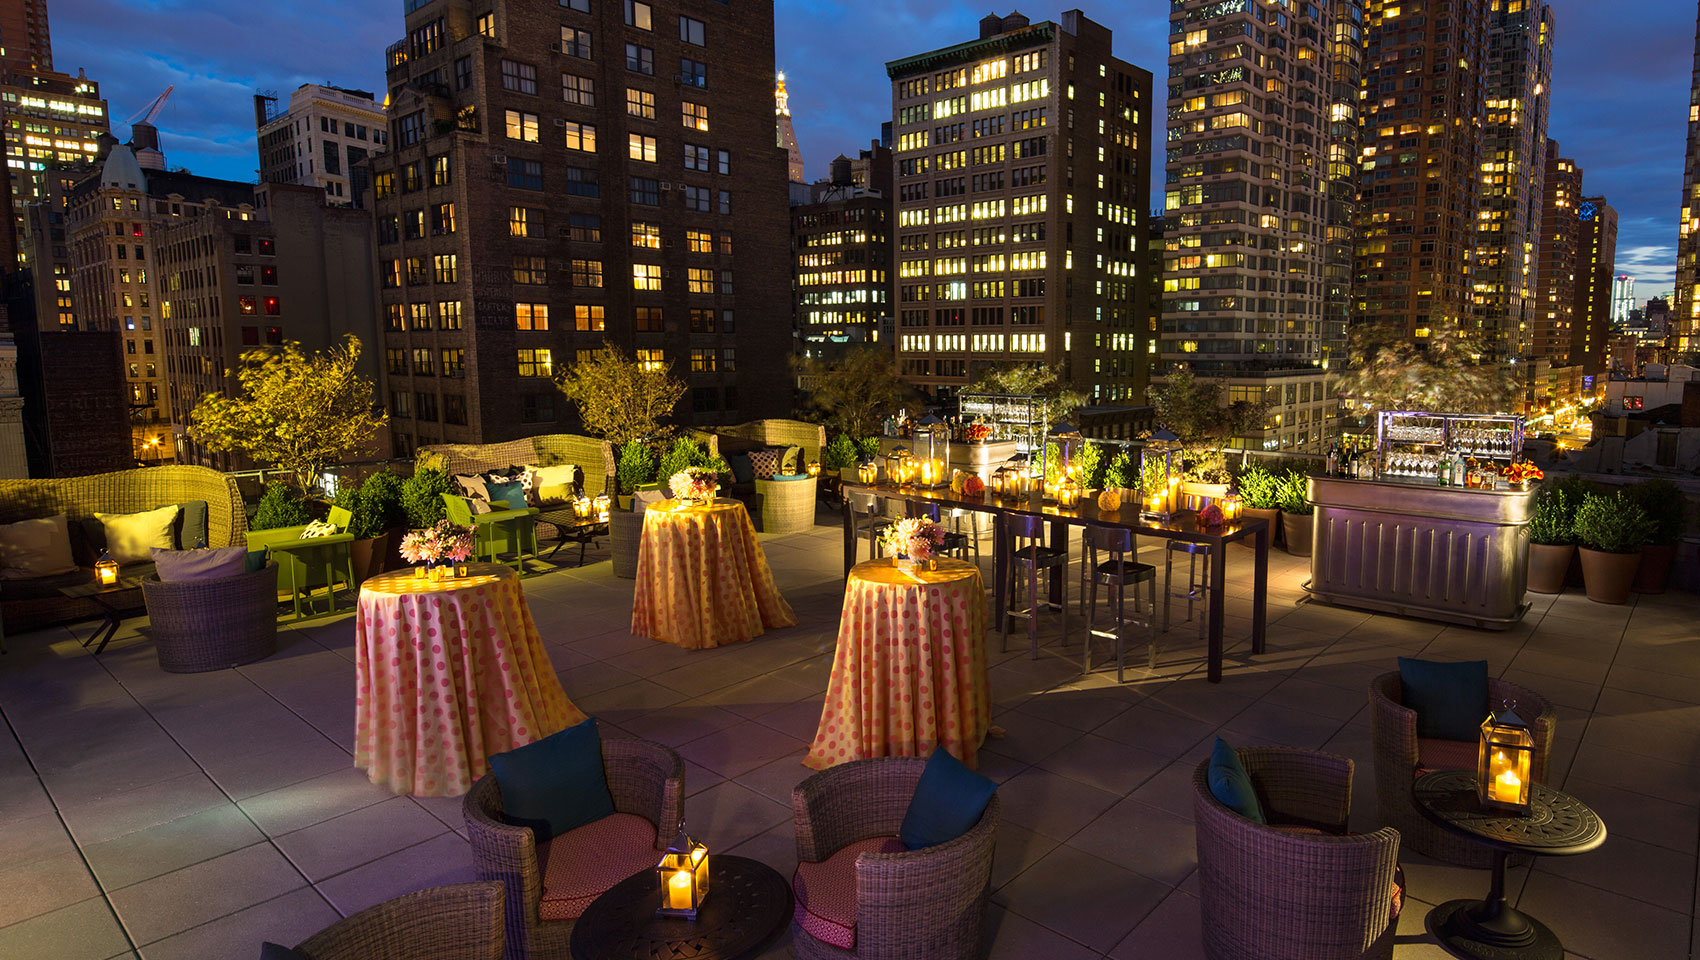 Kimpton Hotel Eventi Veranda set up for outdoor event with tables and bar against city building views at night